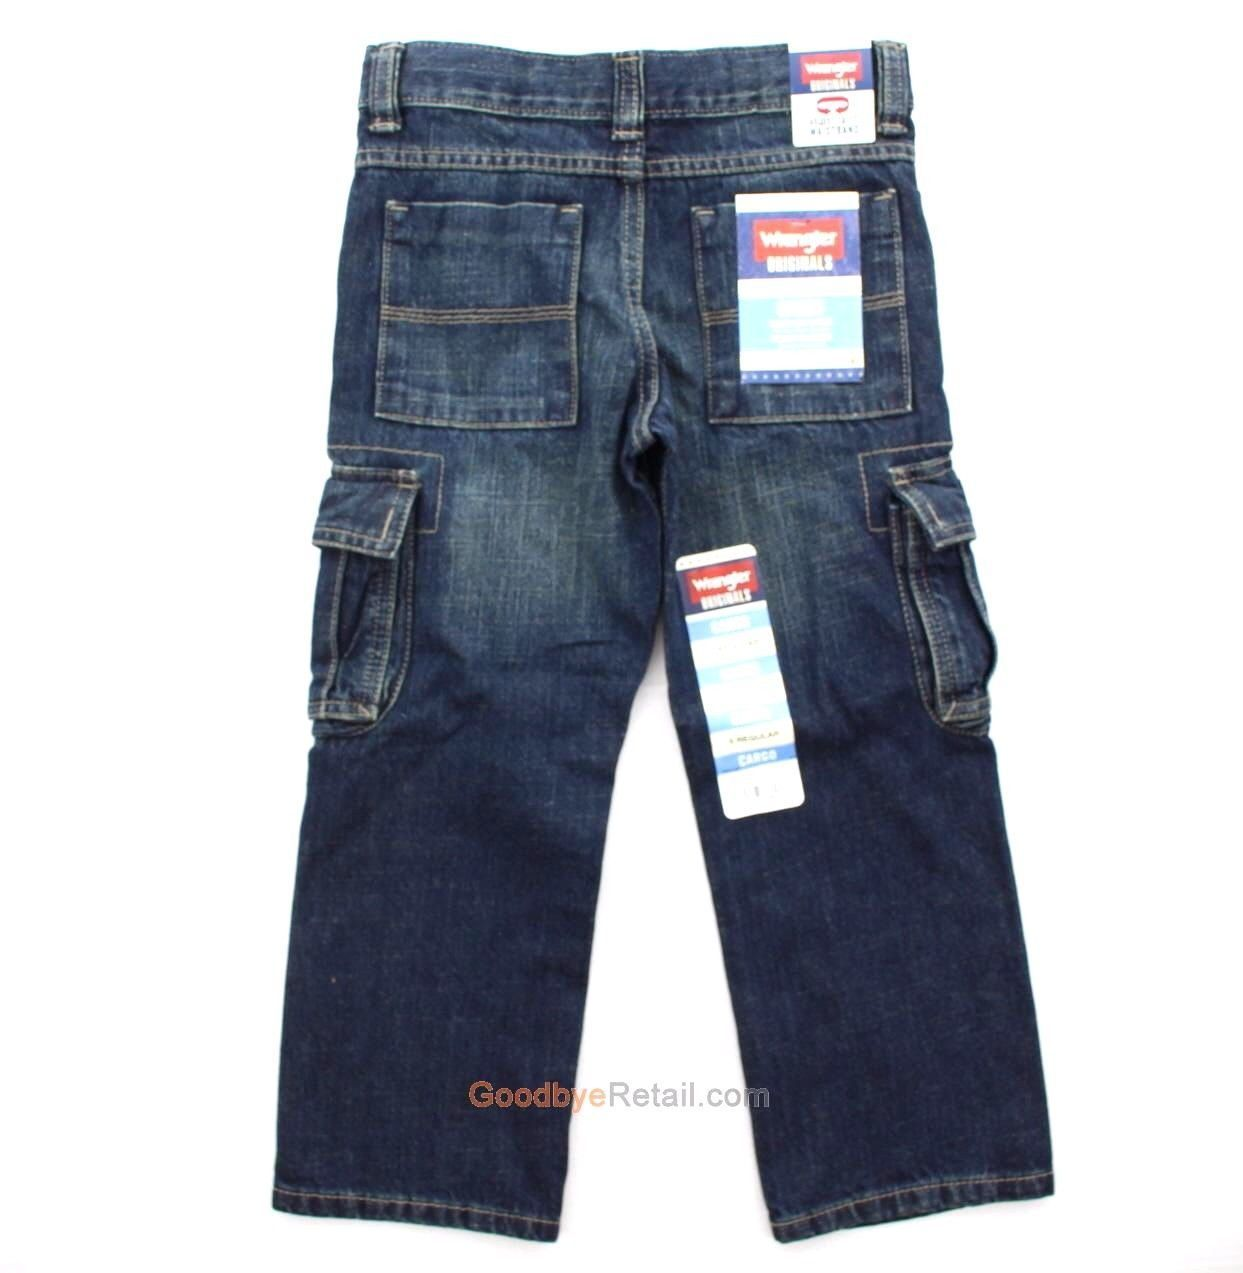 Wrangler Cargo Regular Boys Denim Jeans 4 Cargo Regular